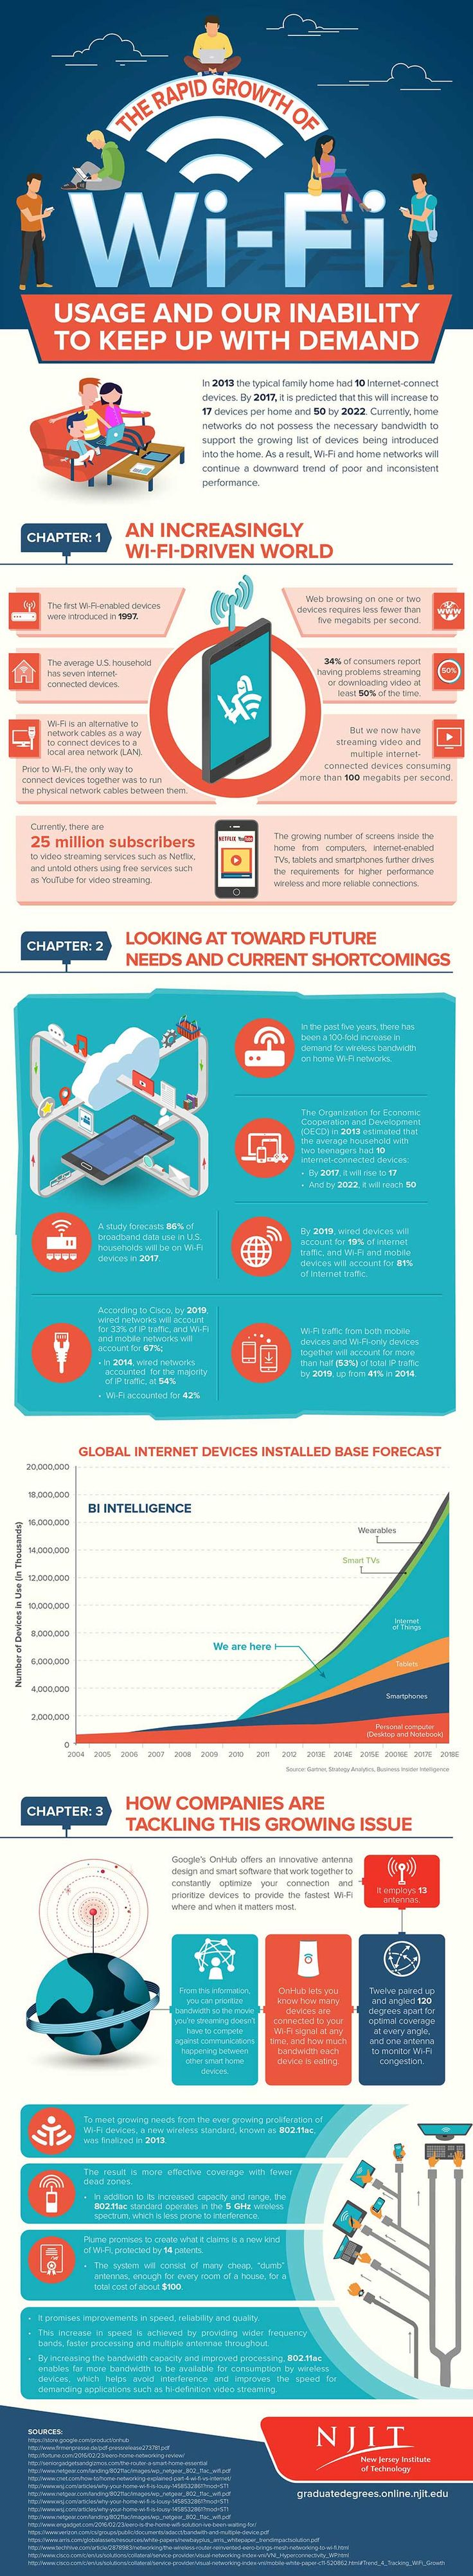 The Rapid Growth Of Wi-Fi #Infographic #Internet